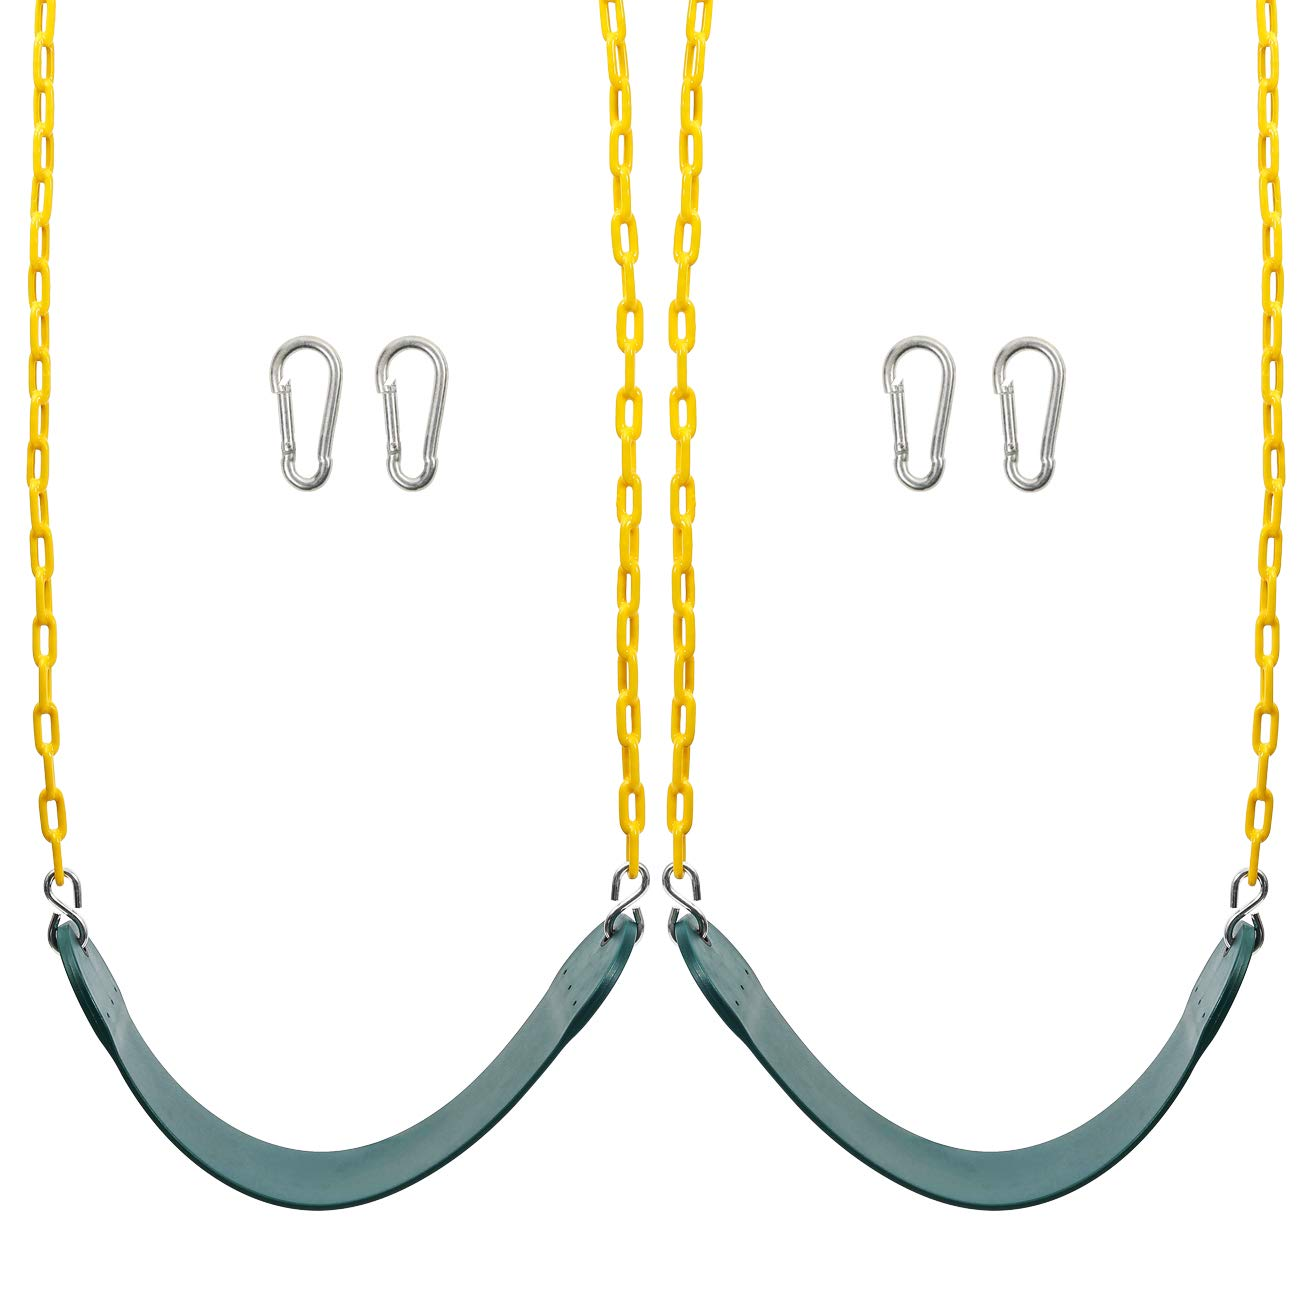 Sunnyglade 2PCS Swings Seats Heavy Duty with 66'' Chain Plastic Coated, Playground Swing Set Accessories Replacement with Snap Hooks, Support 250lb by Sunnyglade (Image #1)